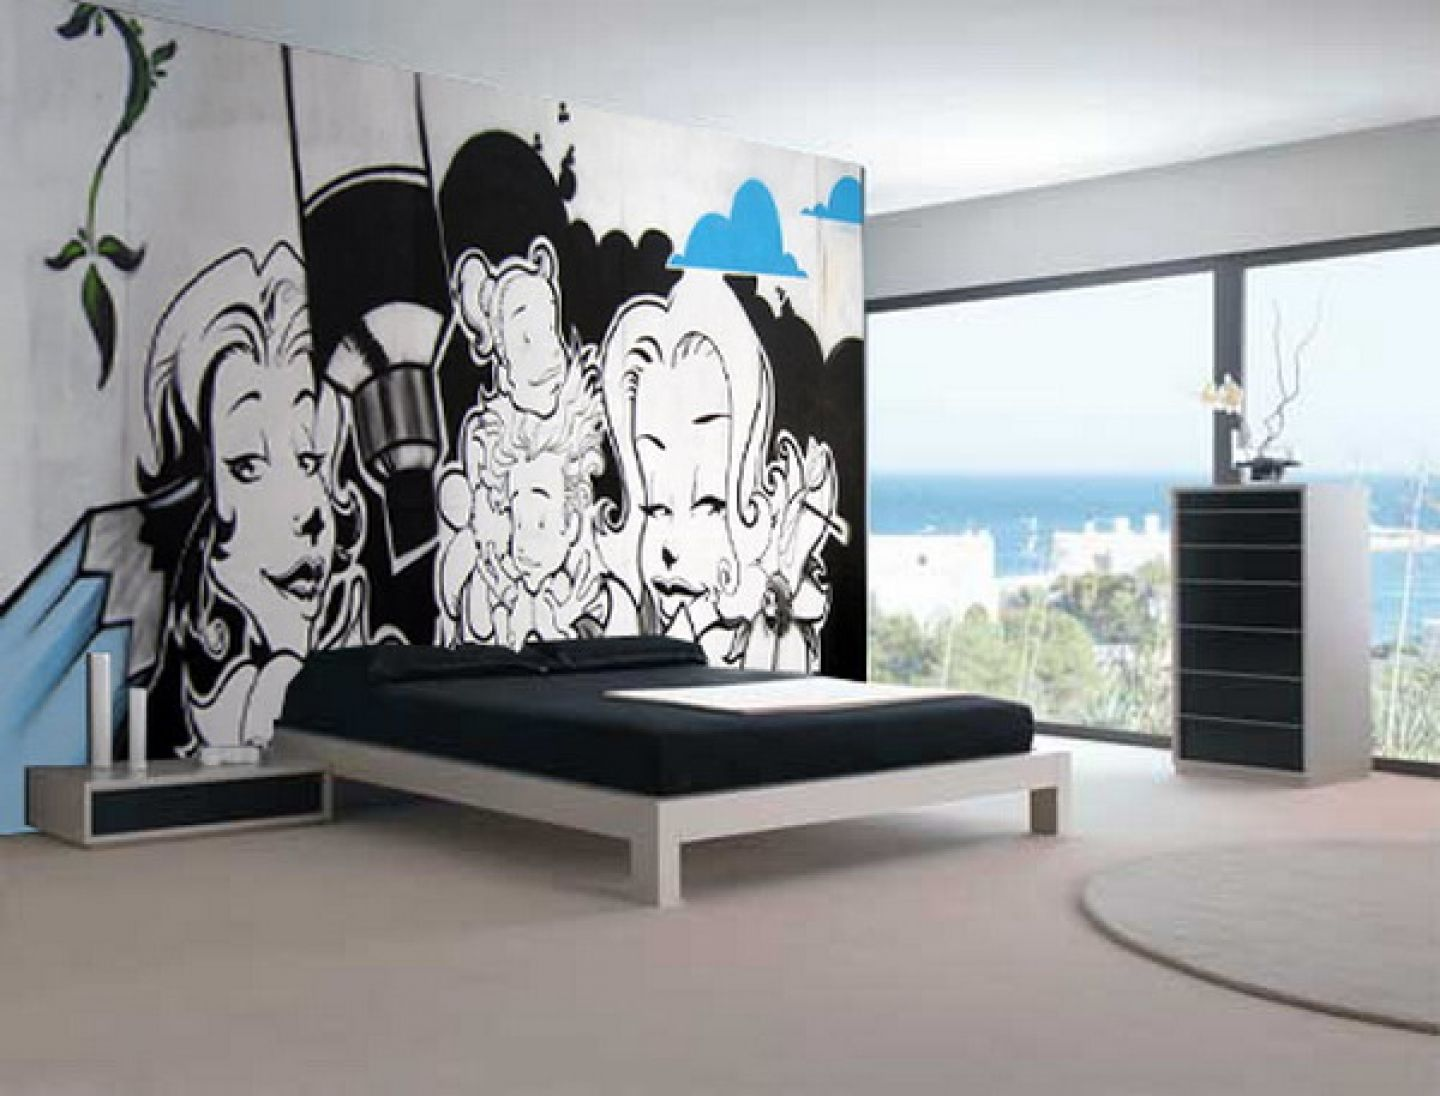 Bedroom paint designs black and white - Abstract Black And White Graffiti In Cool Bedroom Wall Stickers Murals Paint Designs Ideas